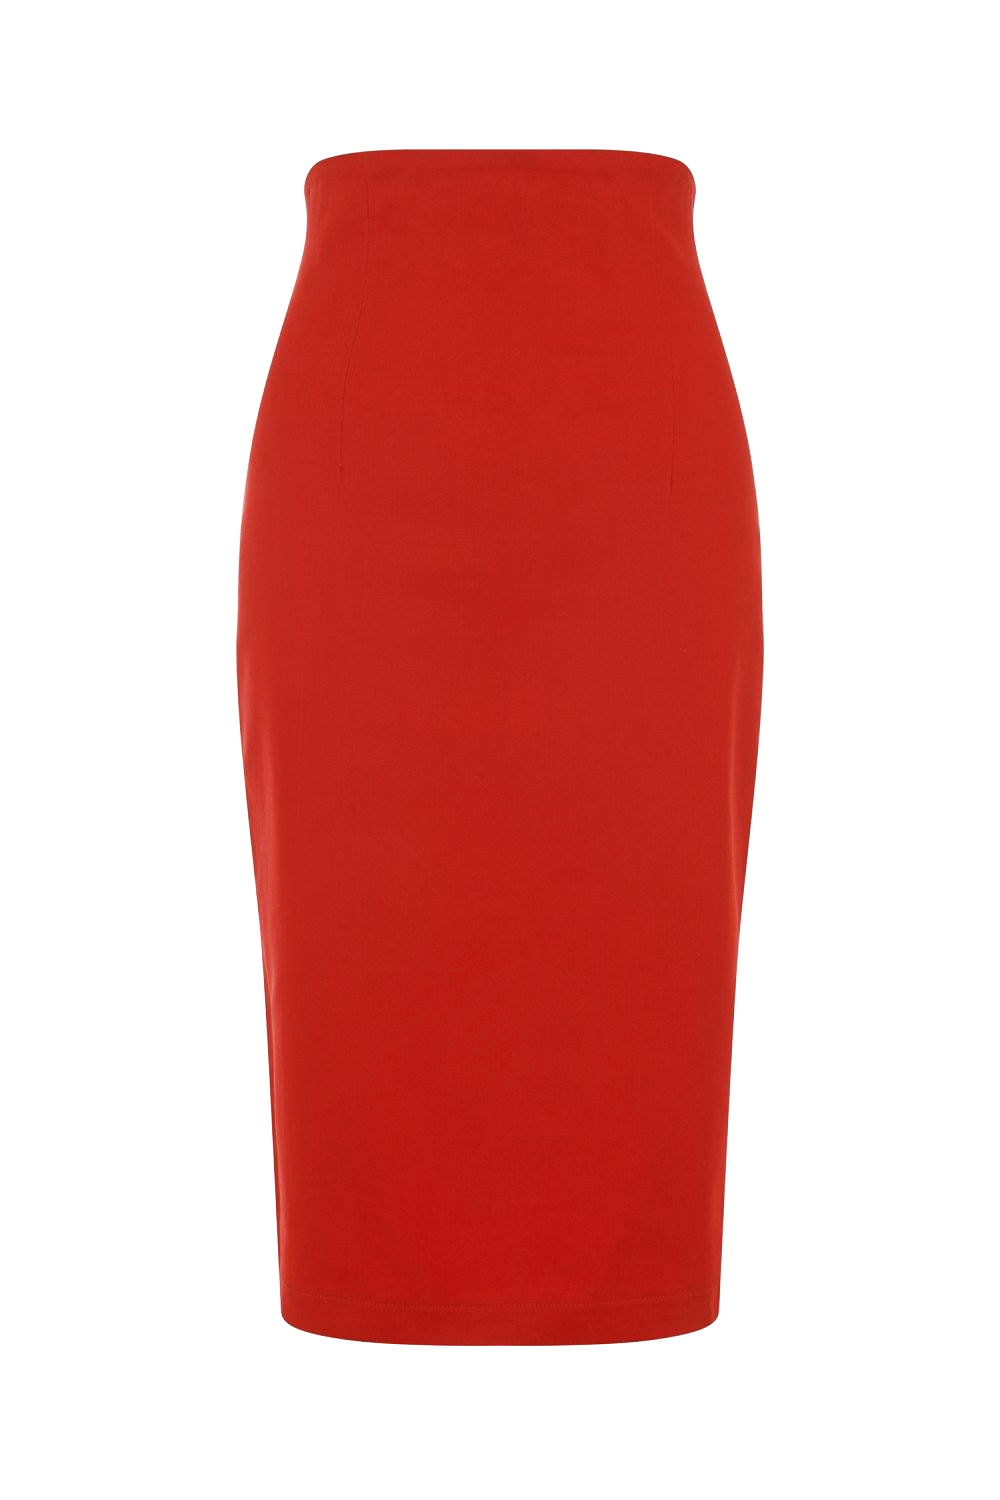 The Joanie Pencil Skirt in retro red - NOW ON SALE!